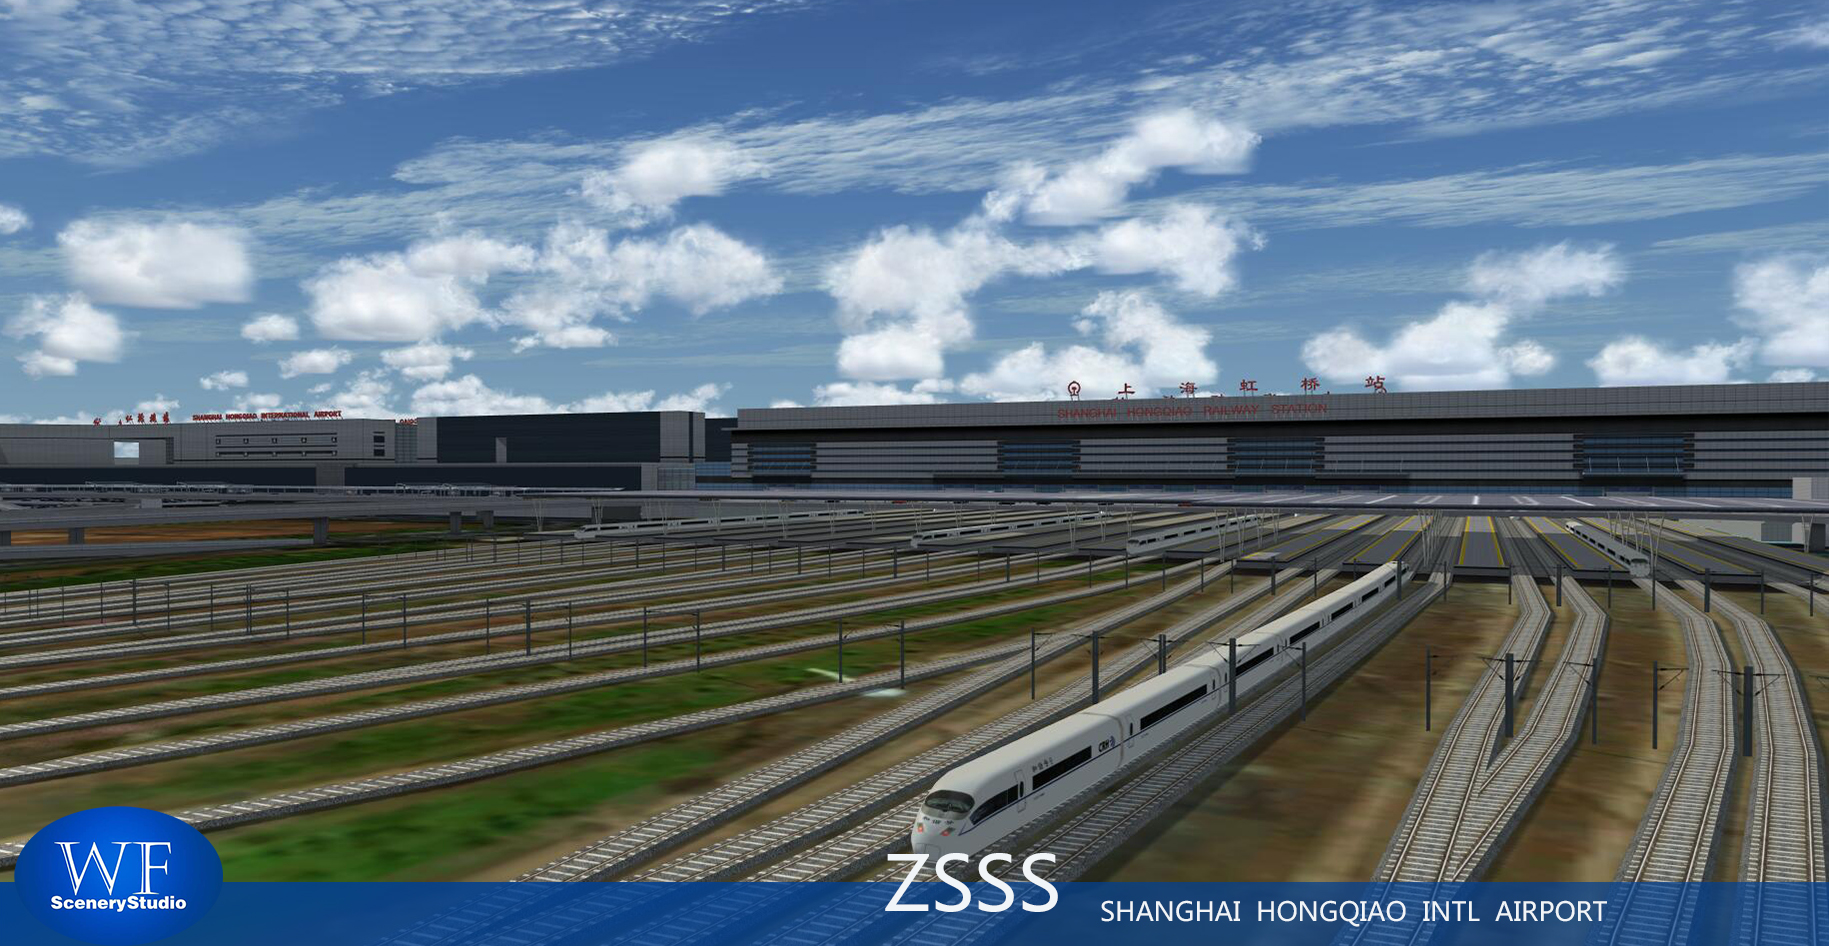 WF SCENERY STUDIO - SHANGHAI HONGQIAO INTERNATIONAL AIRPORT ZSSS P3D4